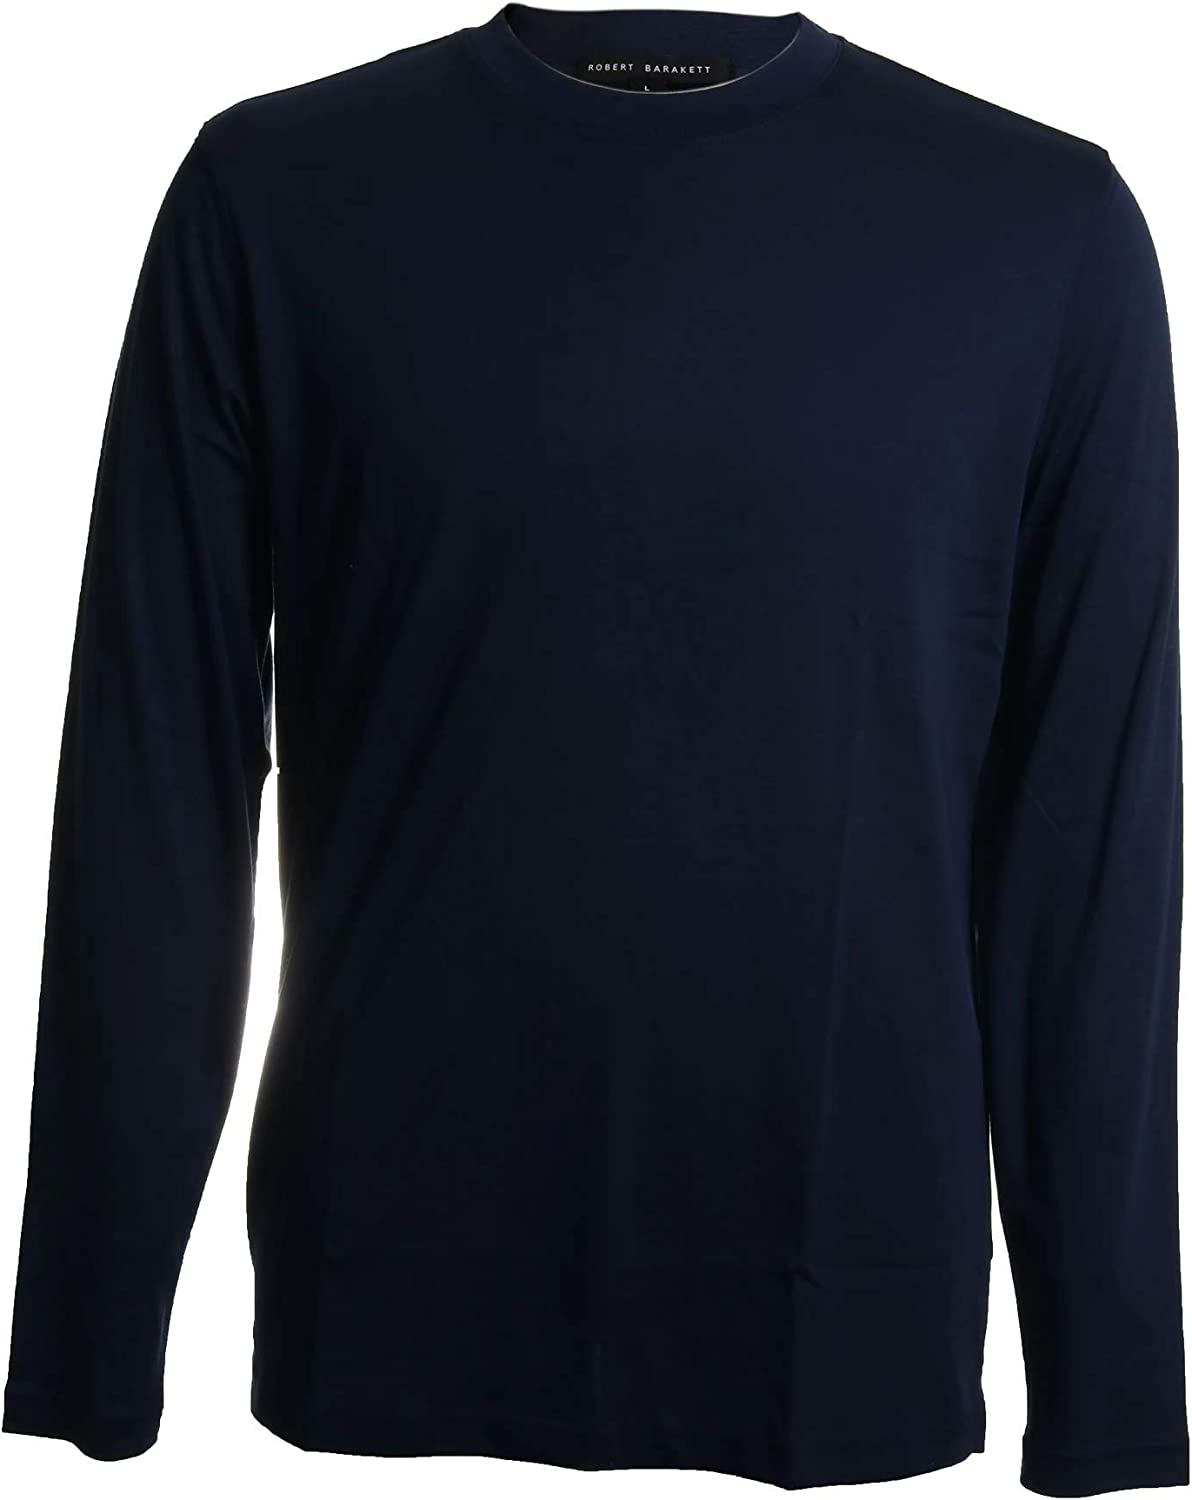 Robert Barakett Georgia OFFicial Long Sleeve Limited time trial price Crew Tee Neck High